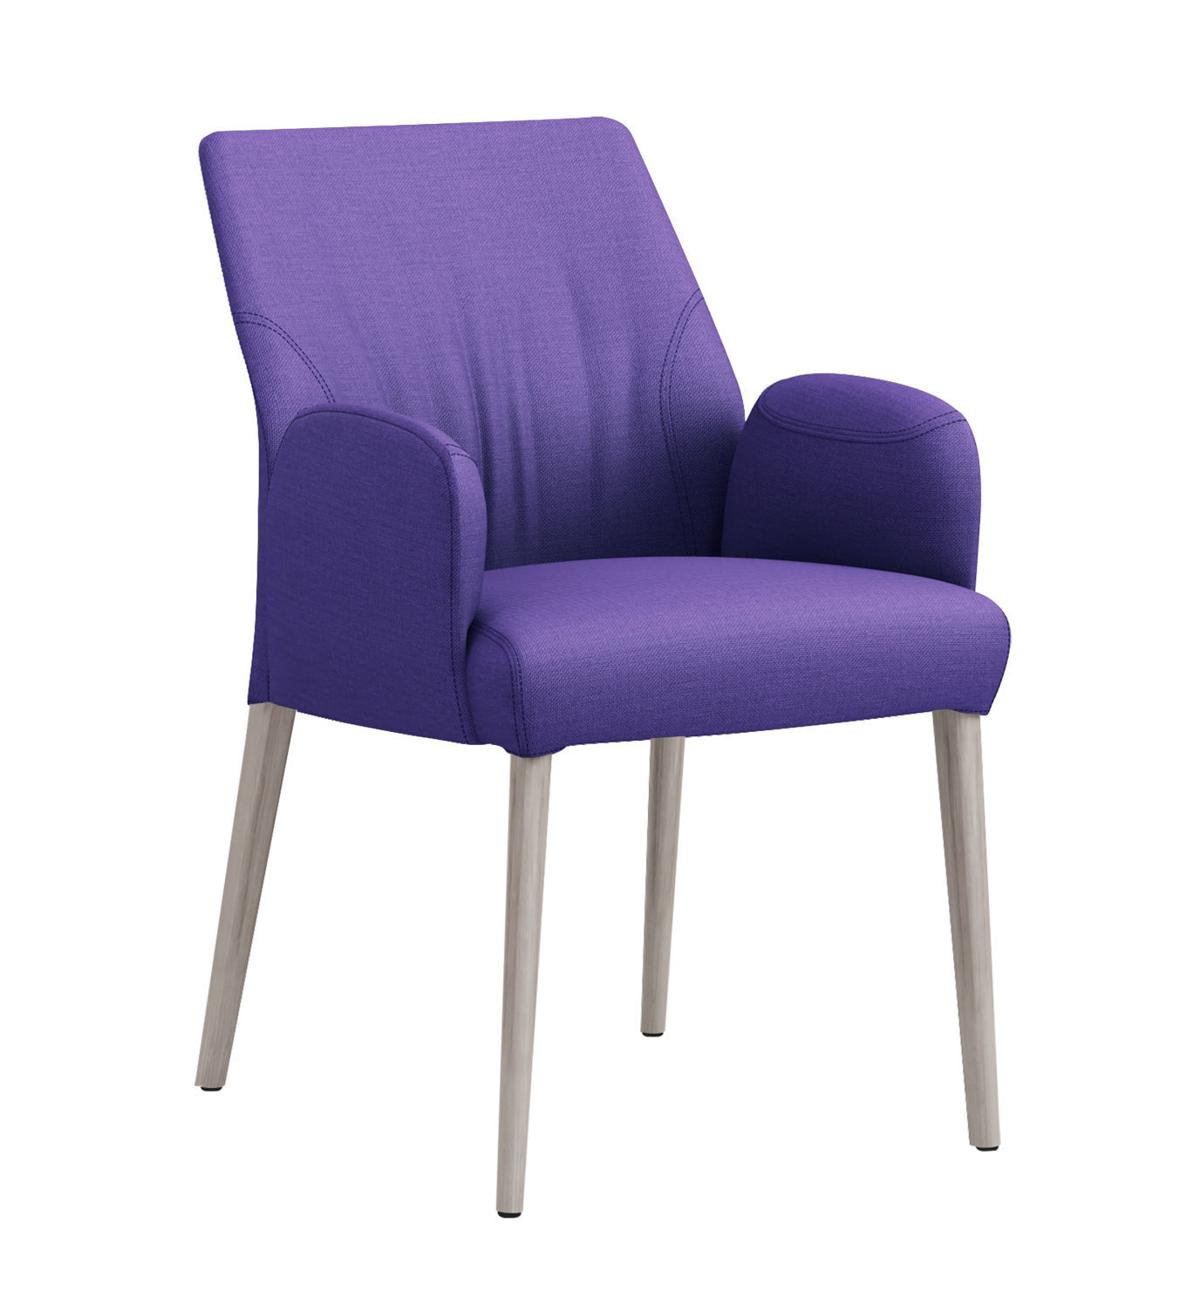 purple-ultraviolet-Kensington Dining Armchair.jpg